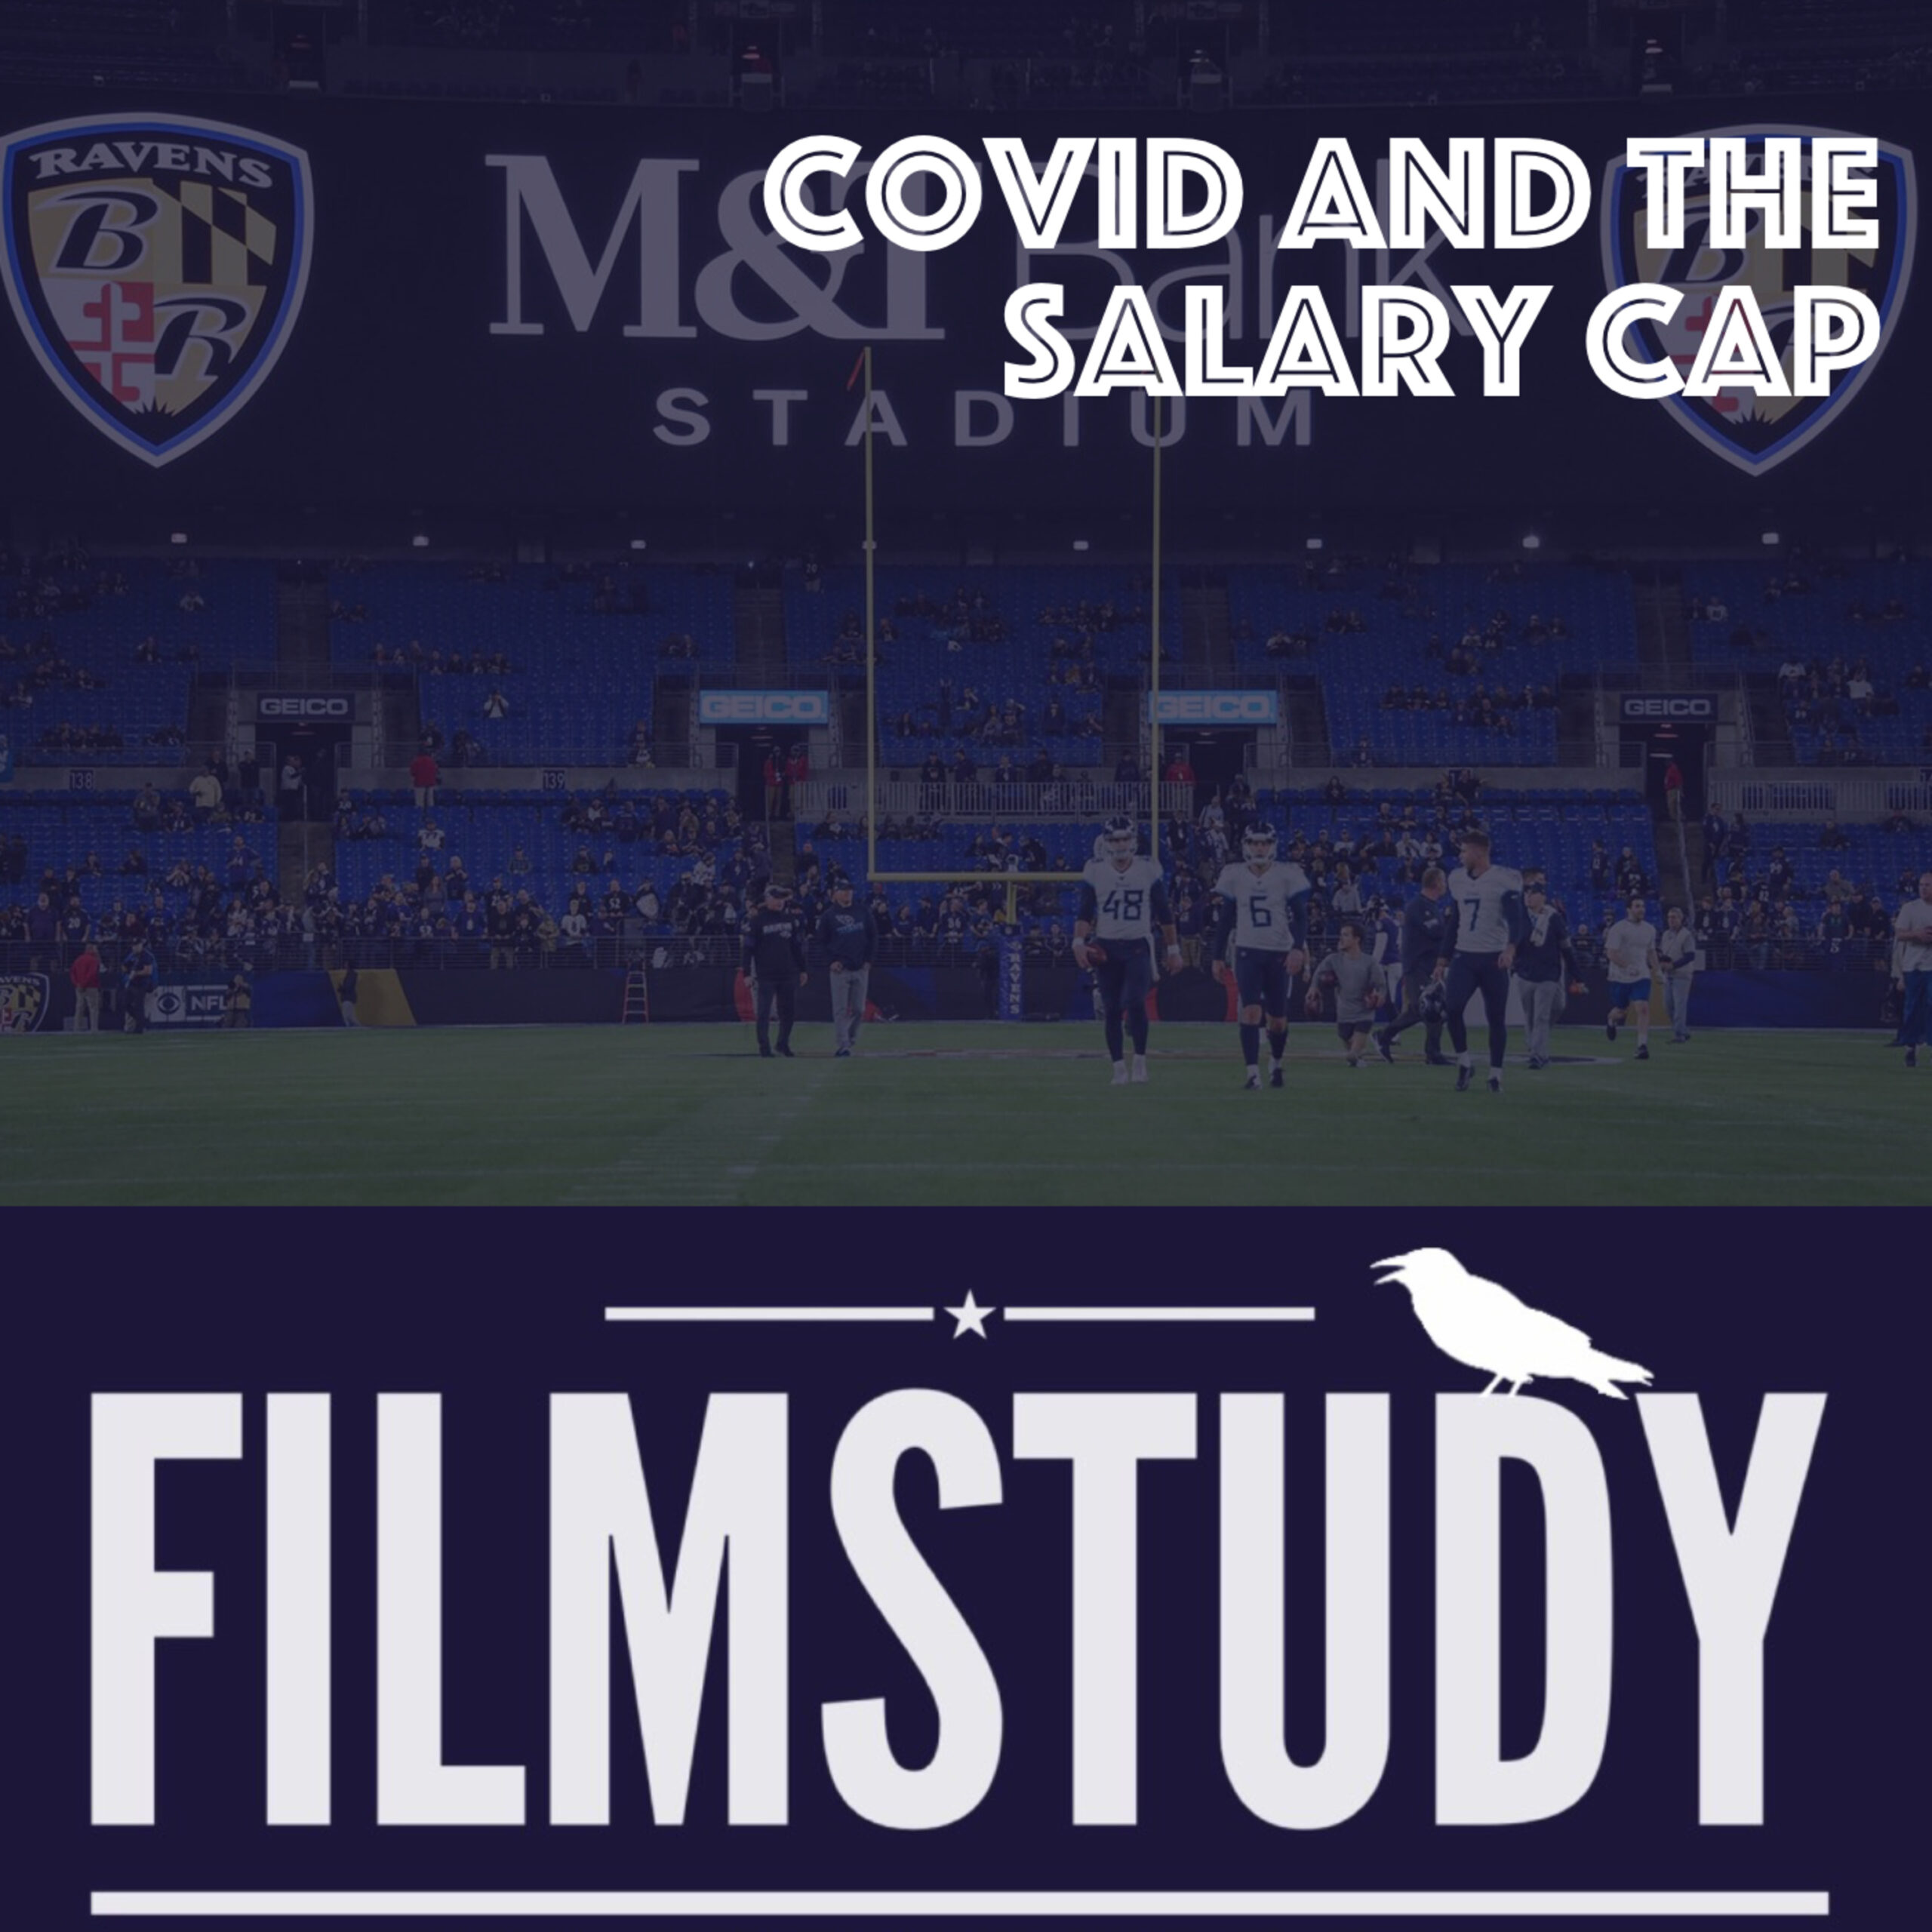 Covid and the Salary Cap